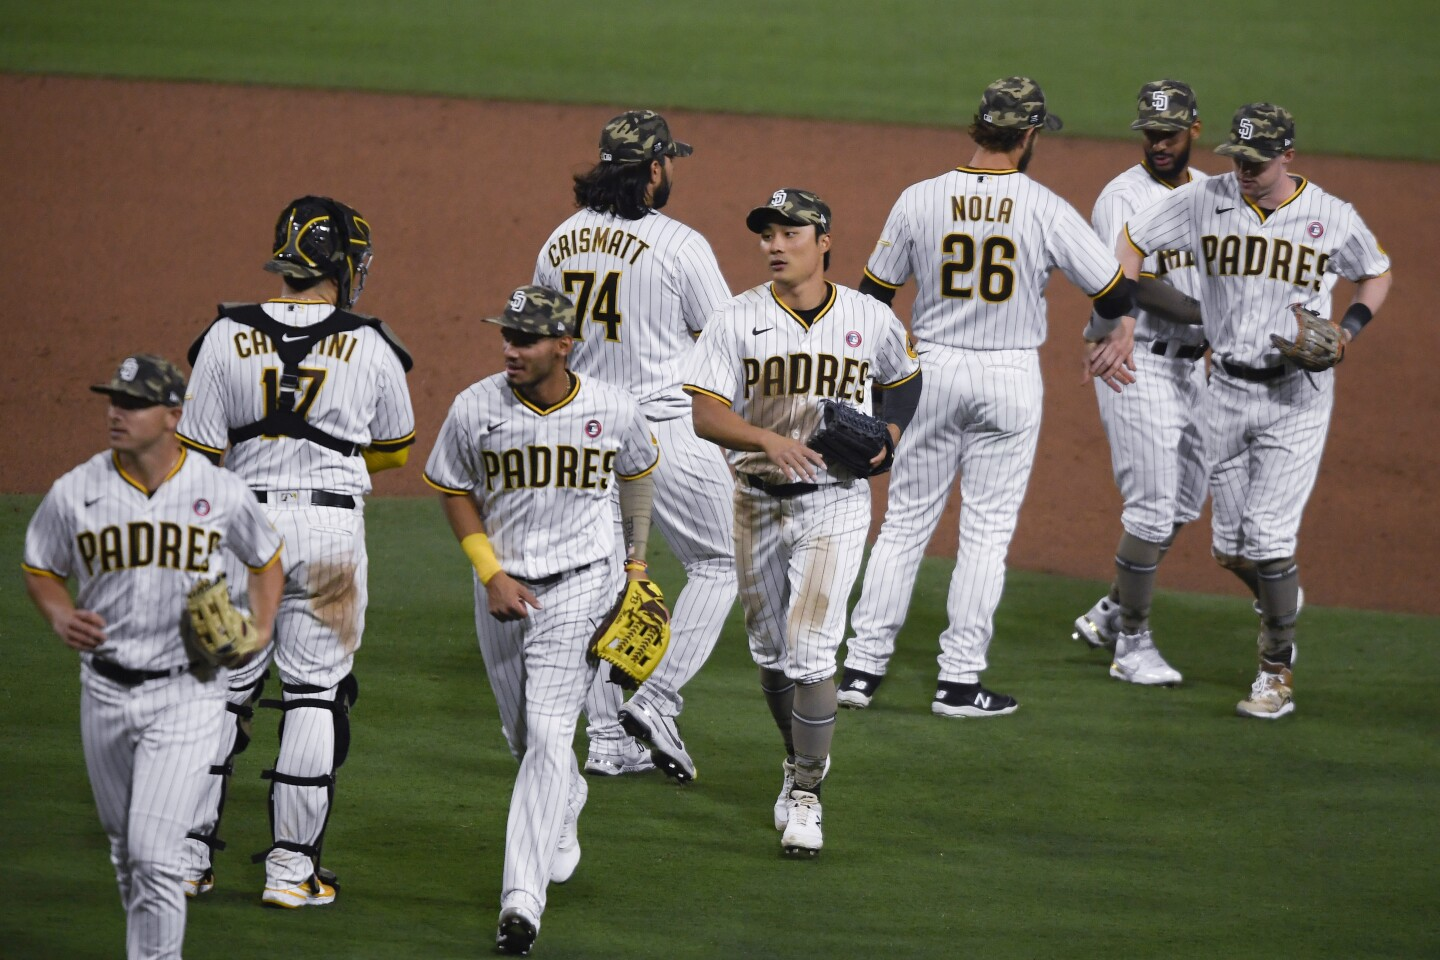 San Diego Padres high-five after the Padres defeated the St. Louis Cardinals 13-3 in a baseball game Saturday, May 15, 2021, in San Diego. (AP Photo/Denis Poroy)